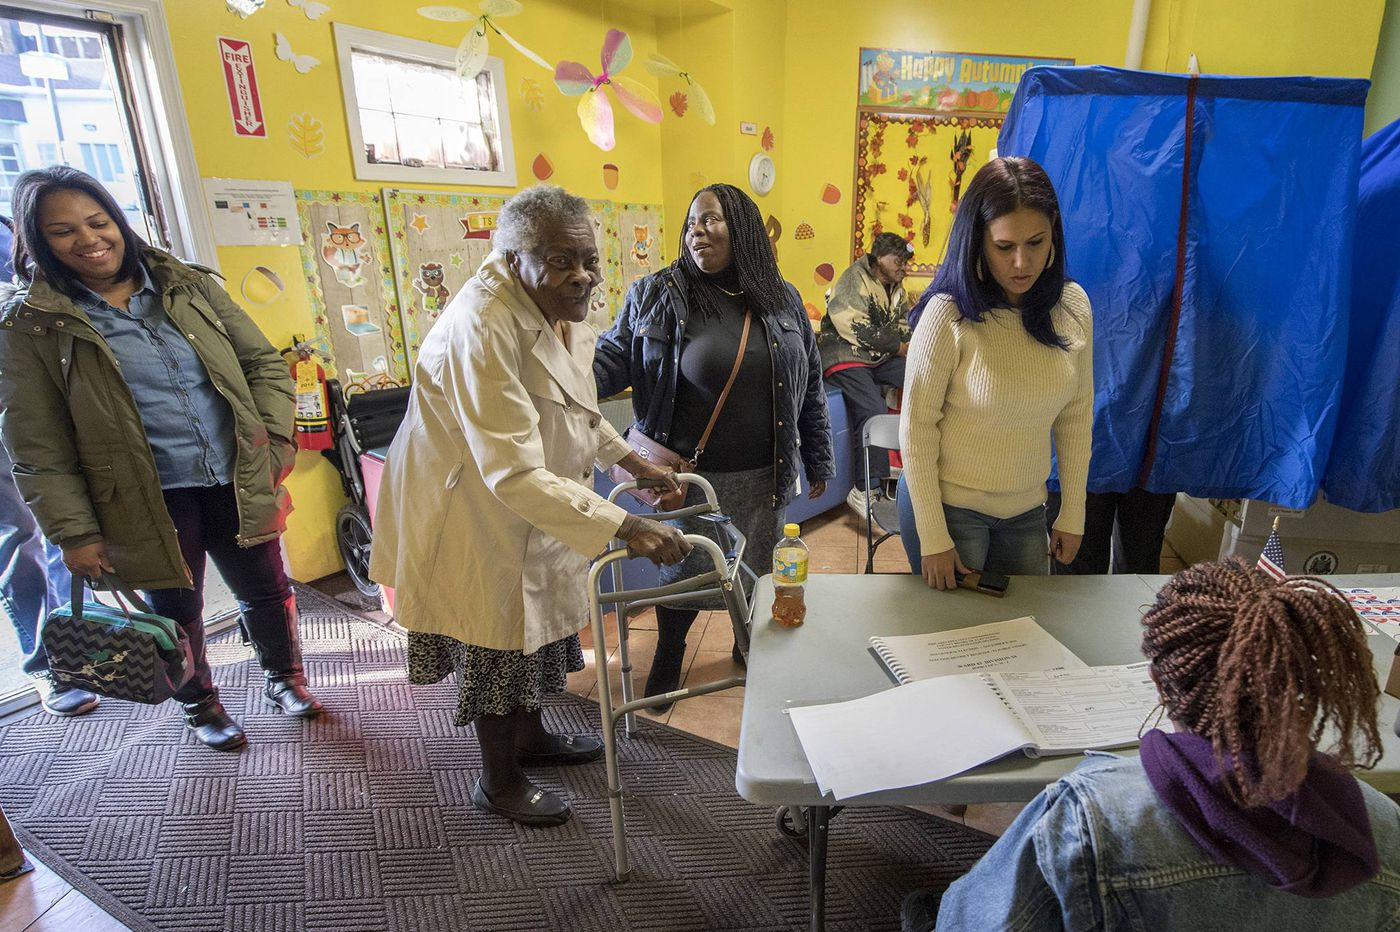 Philadelphia primary election 2019: What to know before voting